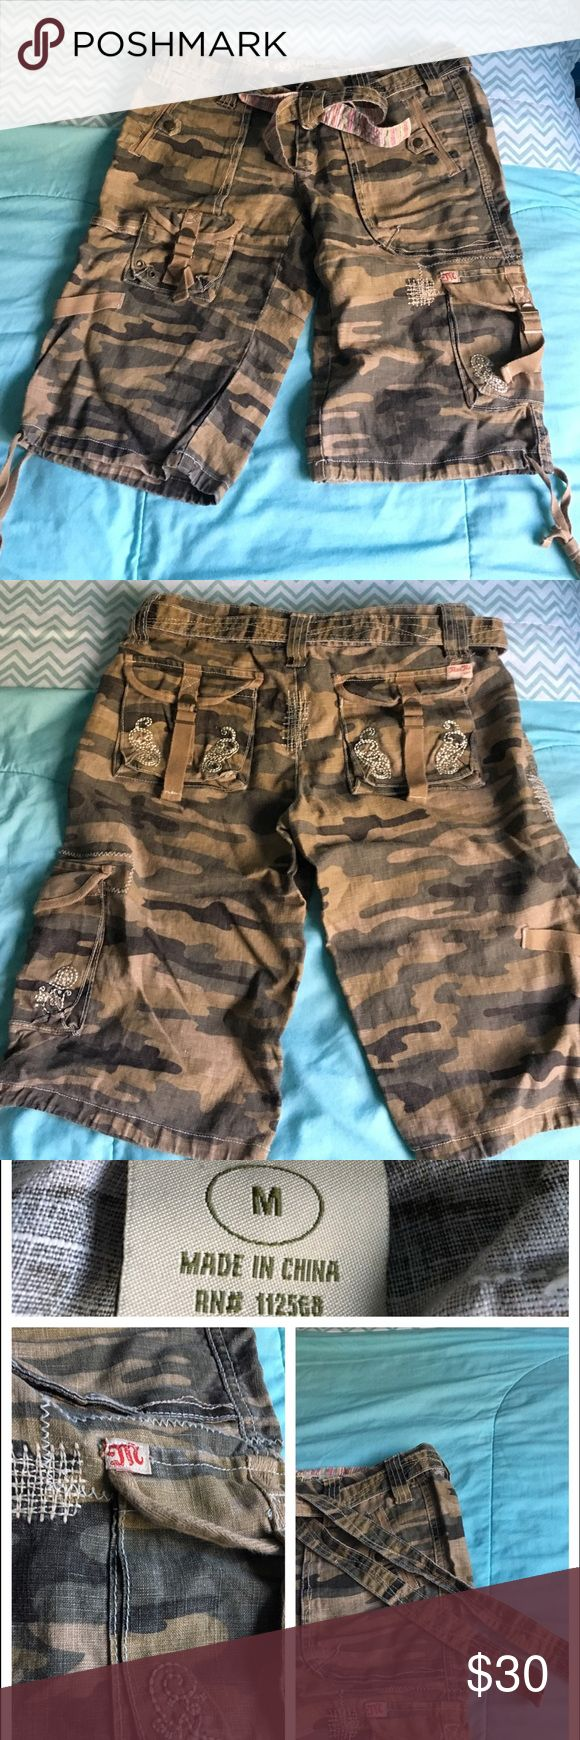 ⚜️ Miss Me Cargo Camouflage Shorts ⚜️ Miss Me Camouflage shorts with multiple cargo pockets each with belt-in style tie downs for the flaps, two on the back side, one on the left side and one on the front right leg as well as utility loop on the right side. Long belt for styling or can be worn without. Single button and zip fly, both metal. Size Medium Miss Me Shorts Cargos